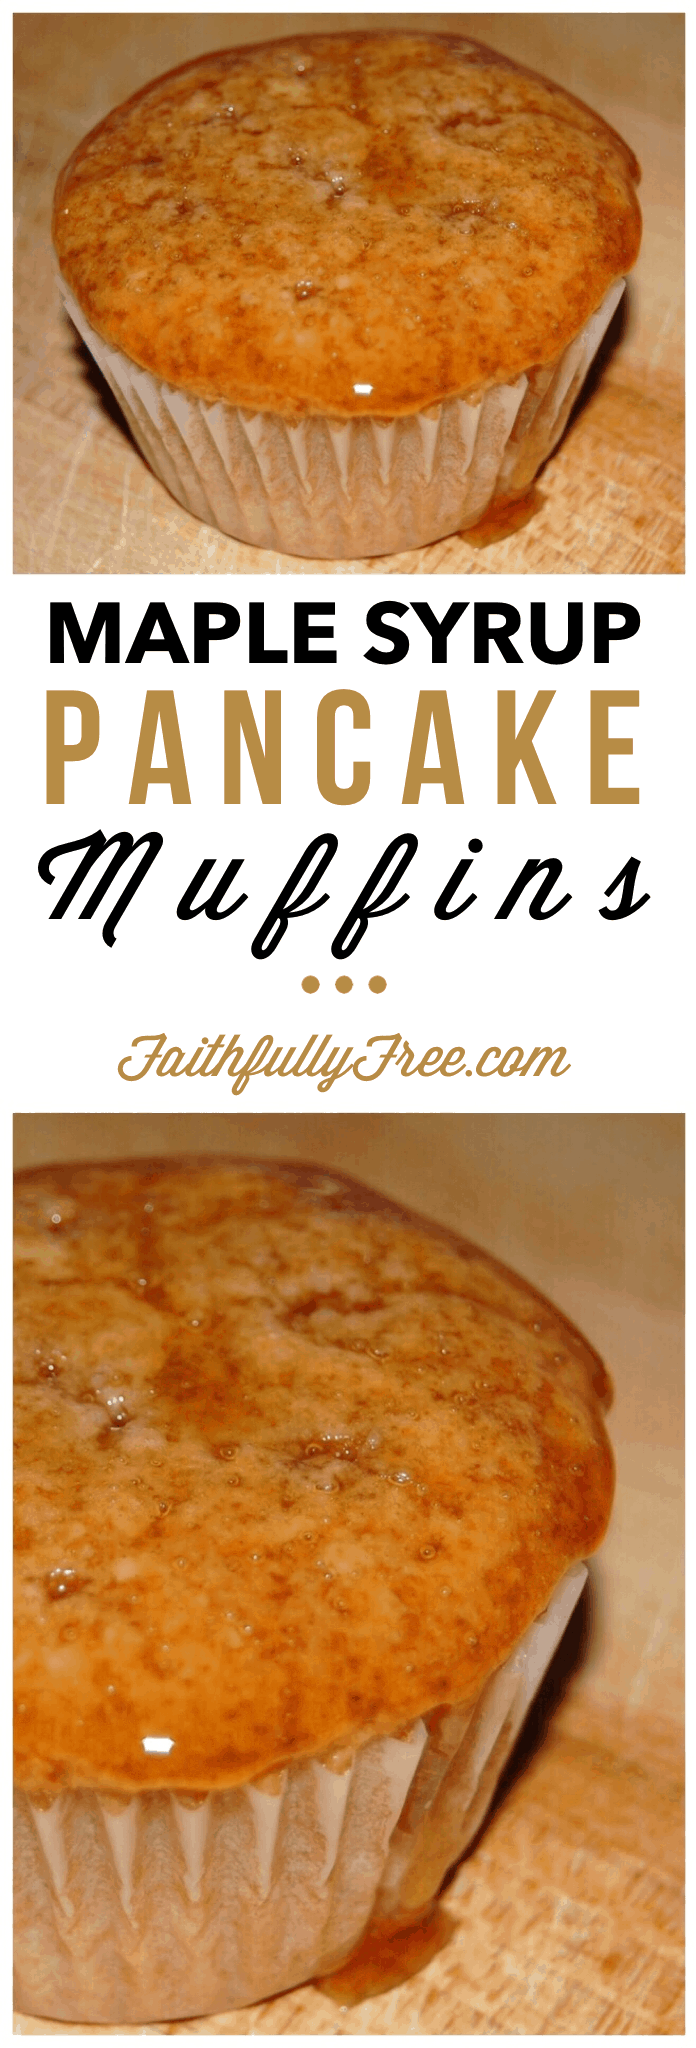 Maple Syrup Pancake Muffins Recipe